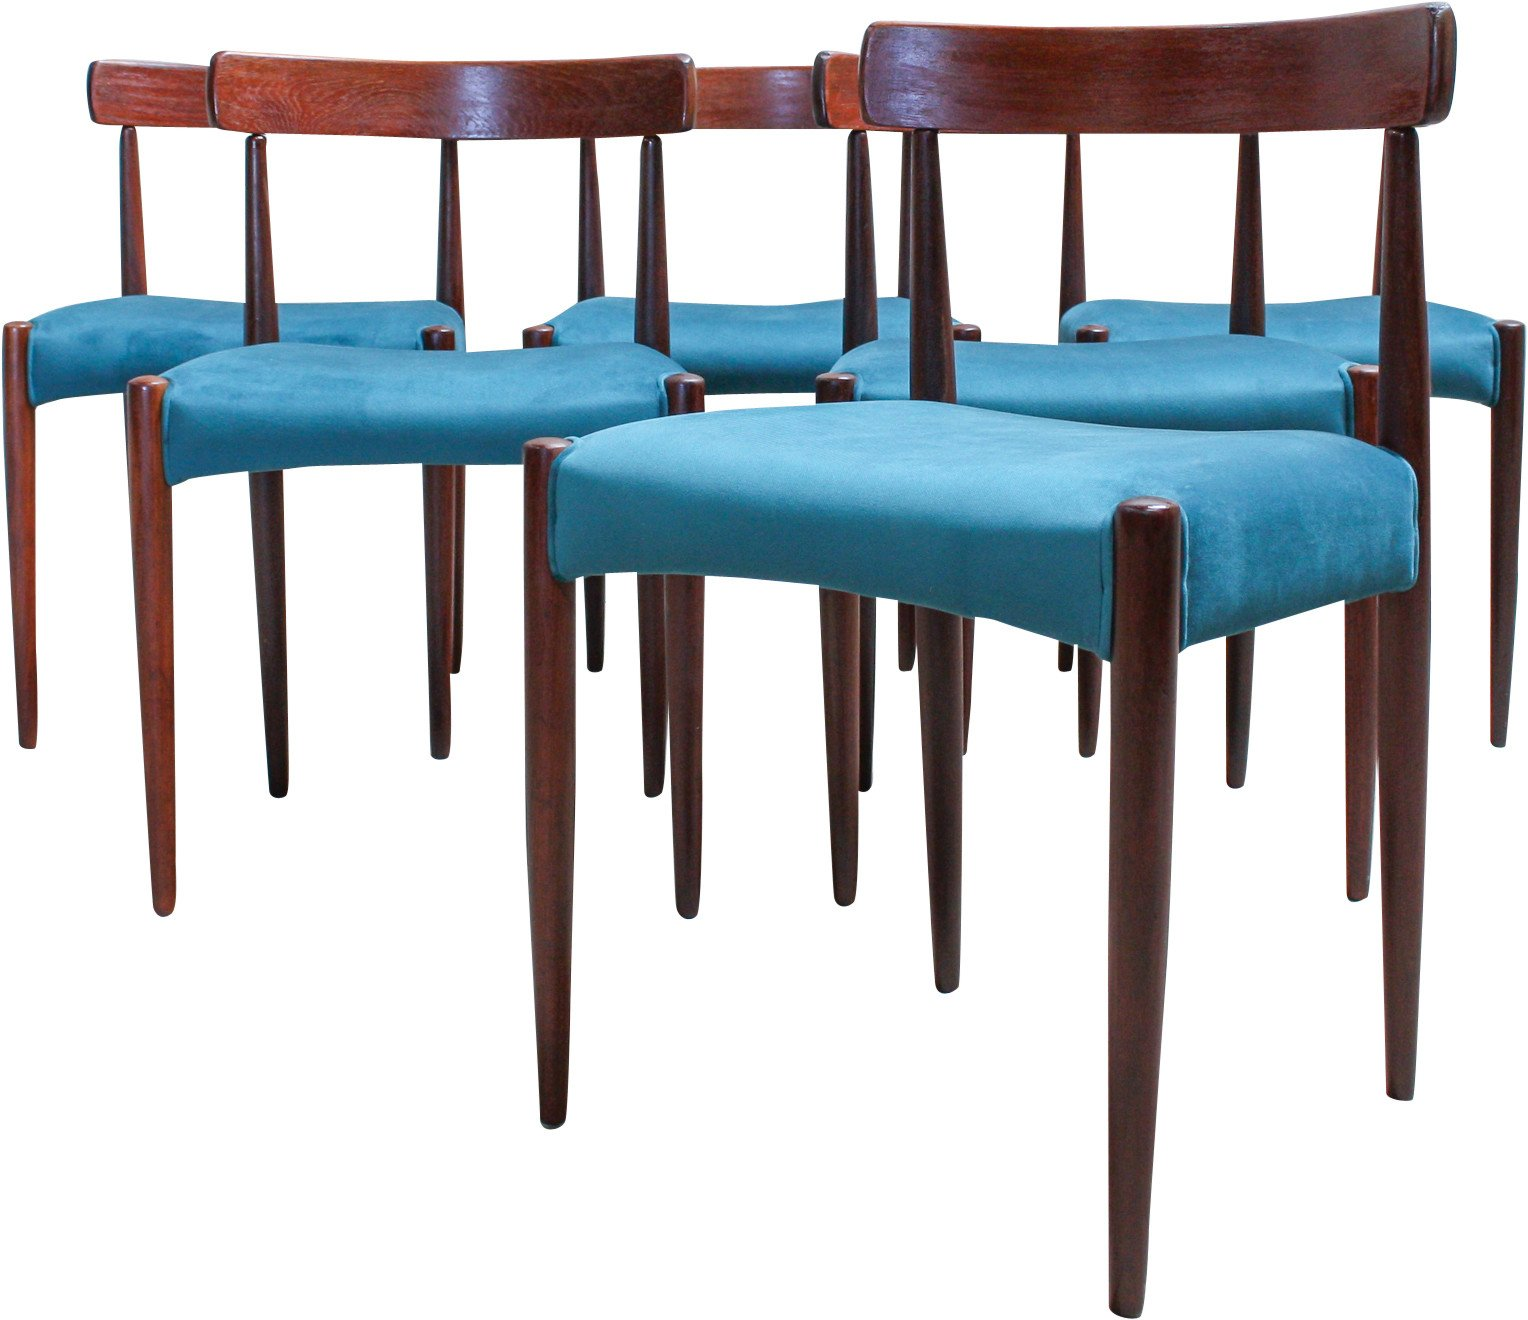 Set of Six Chairs by M. Kold, 1960s